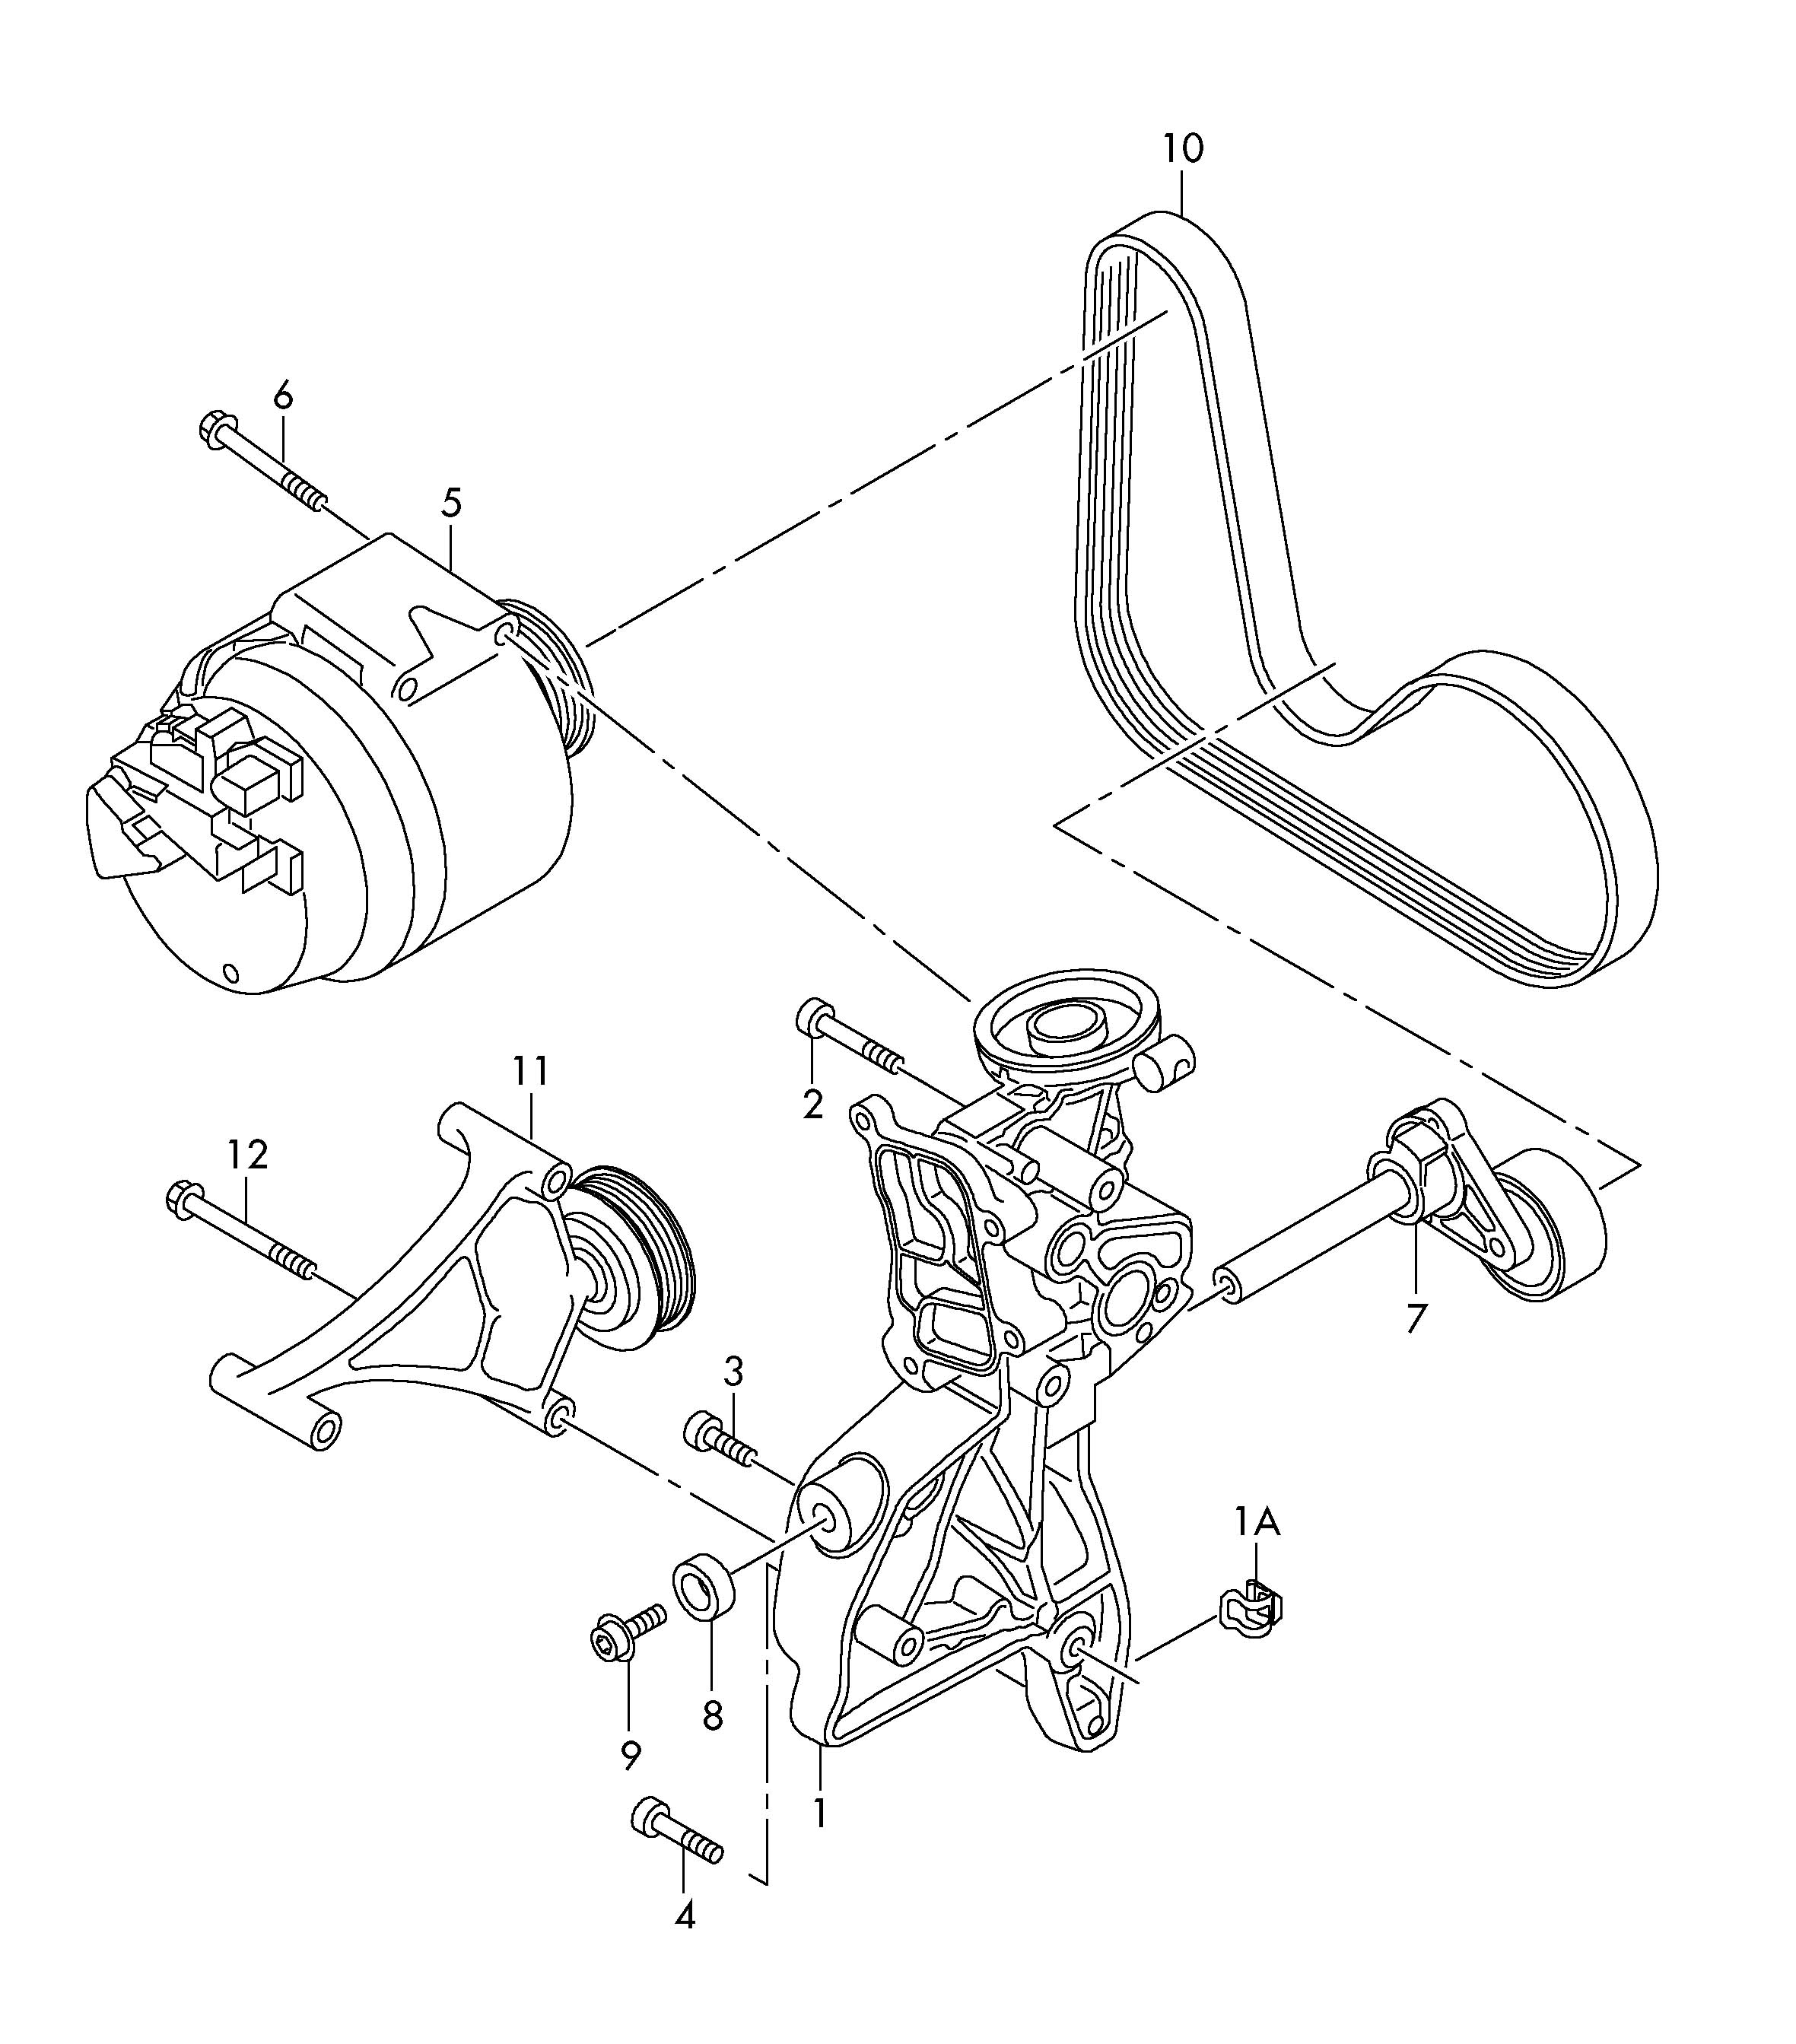 Volkswagen Golf Bracket For Generator And Also Use